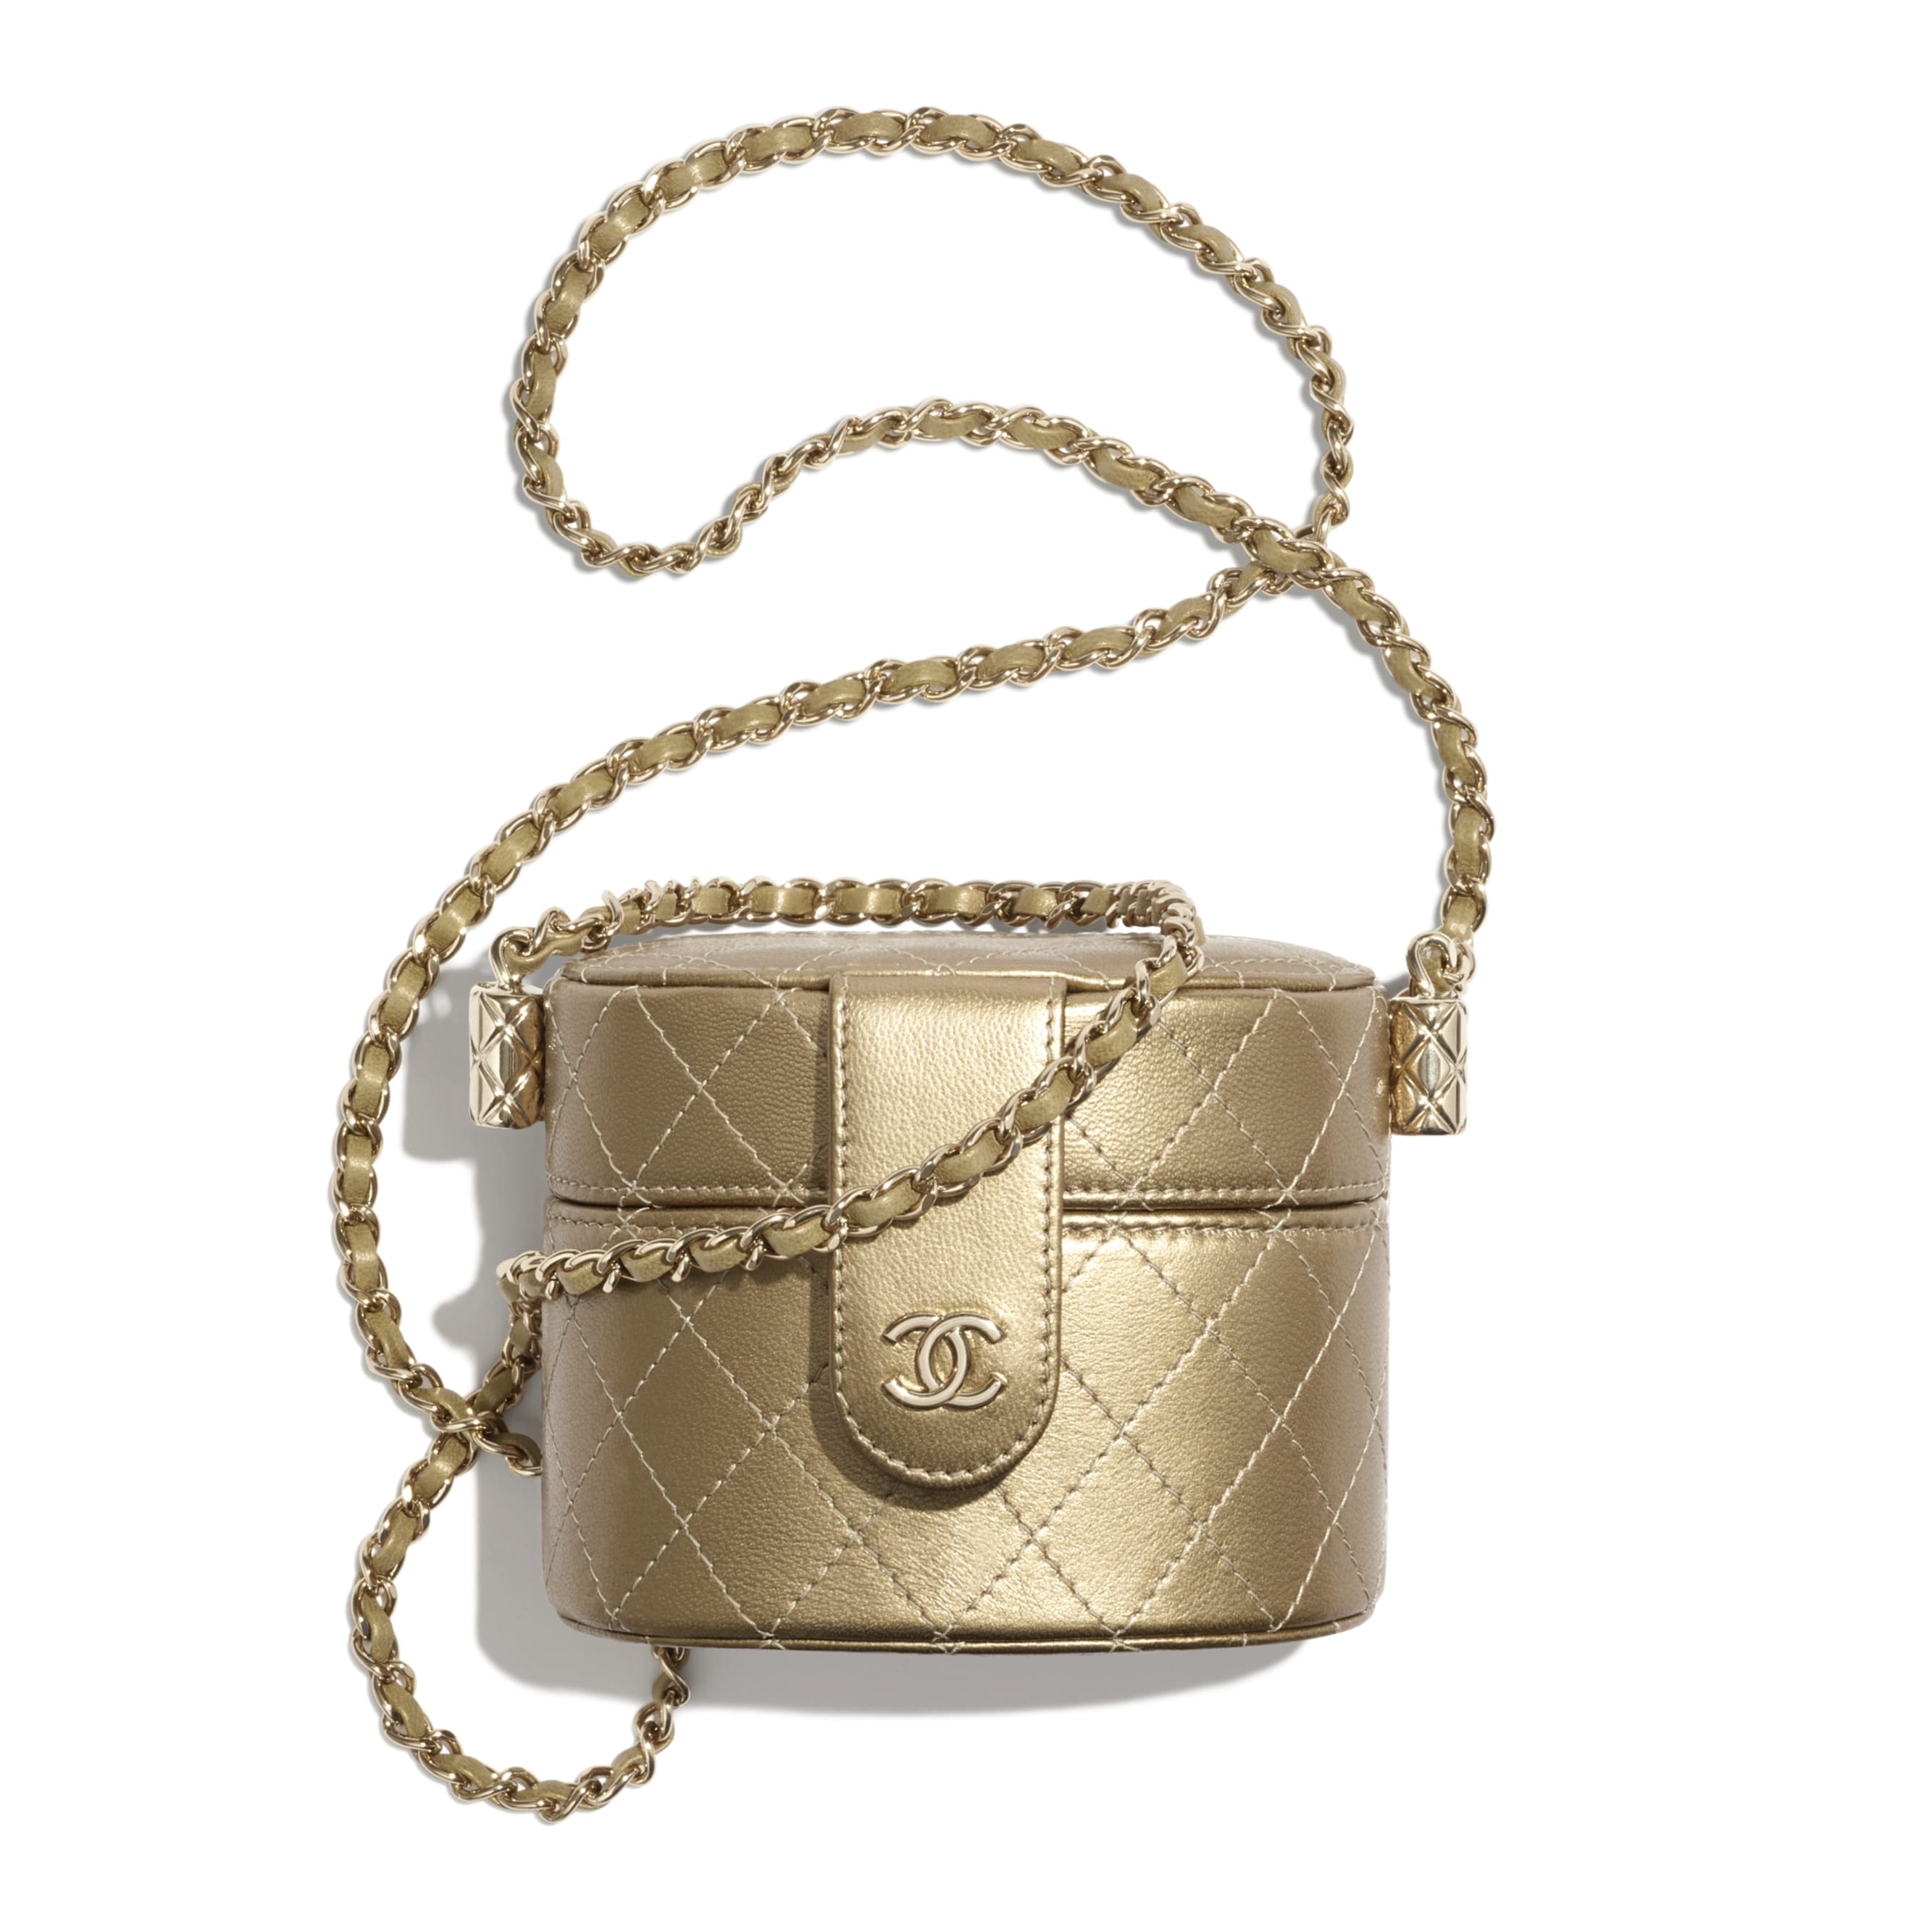 Small Clutch with Chain - Gold - Metallic Lambskin & Gold Metal - CHANEL - Default view - see standard sized version